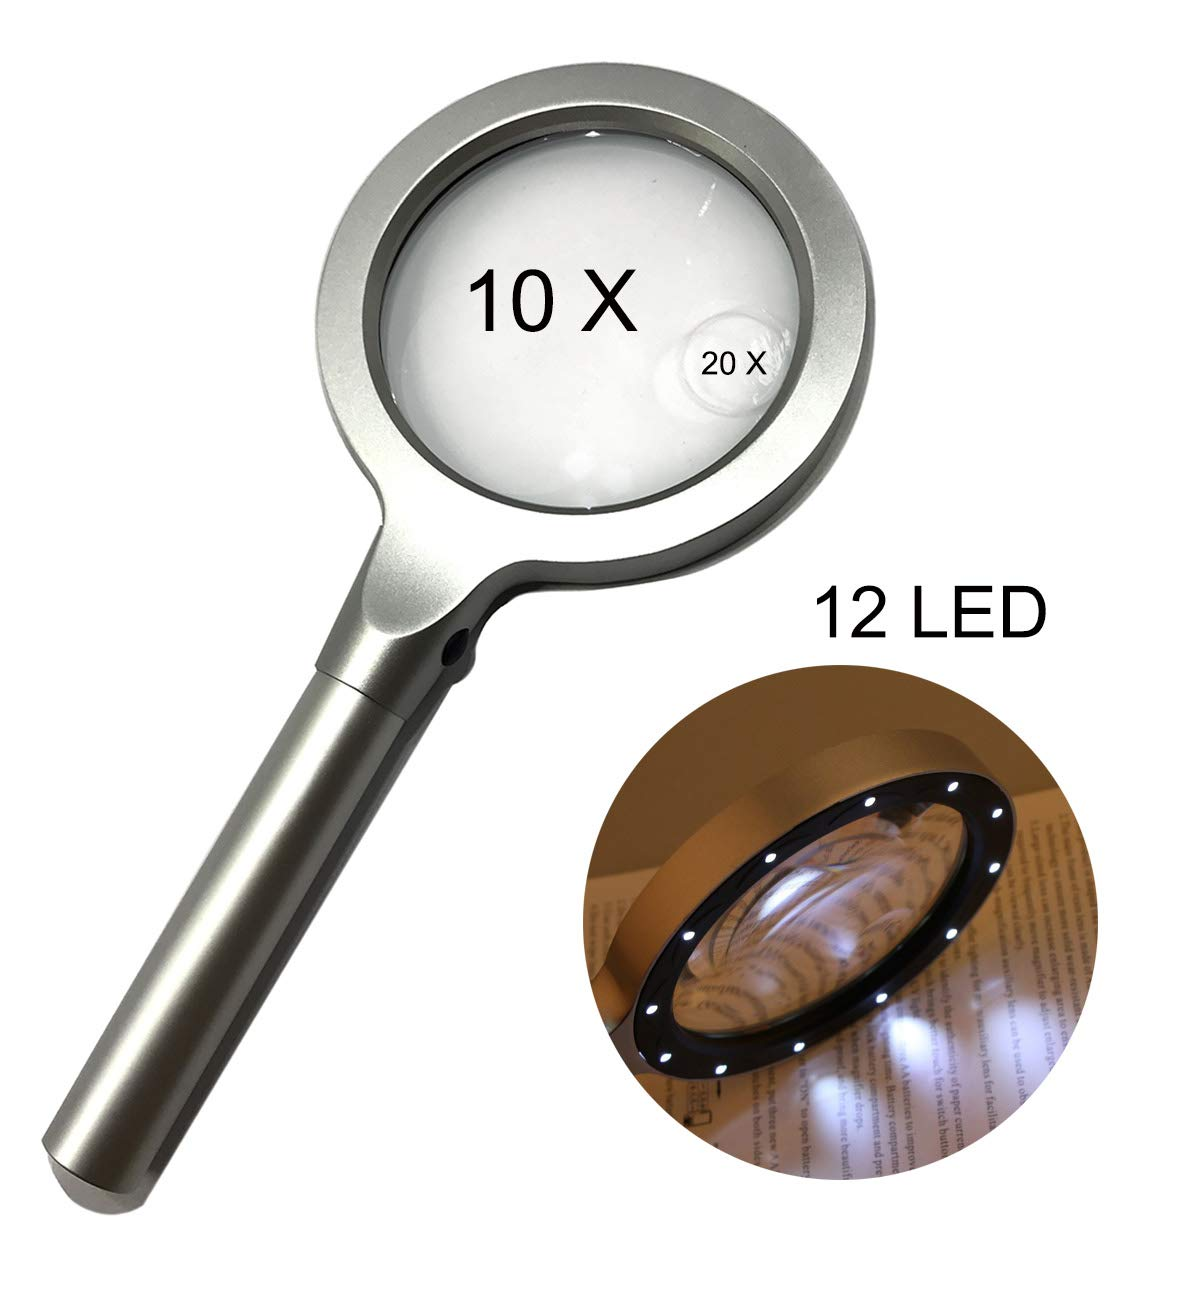 Large LED Handheld Magnifying Glass,10 X 20X Full Metal Lighted Magnifier - Best Size Illuminated Reading Magnifier for Reading,Inspection,Hobbies and Macular Degeneration